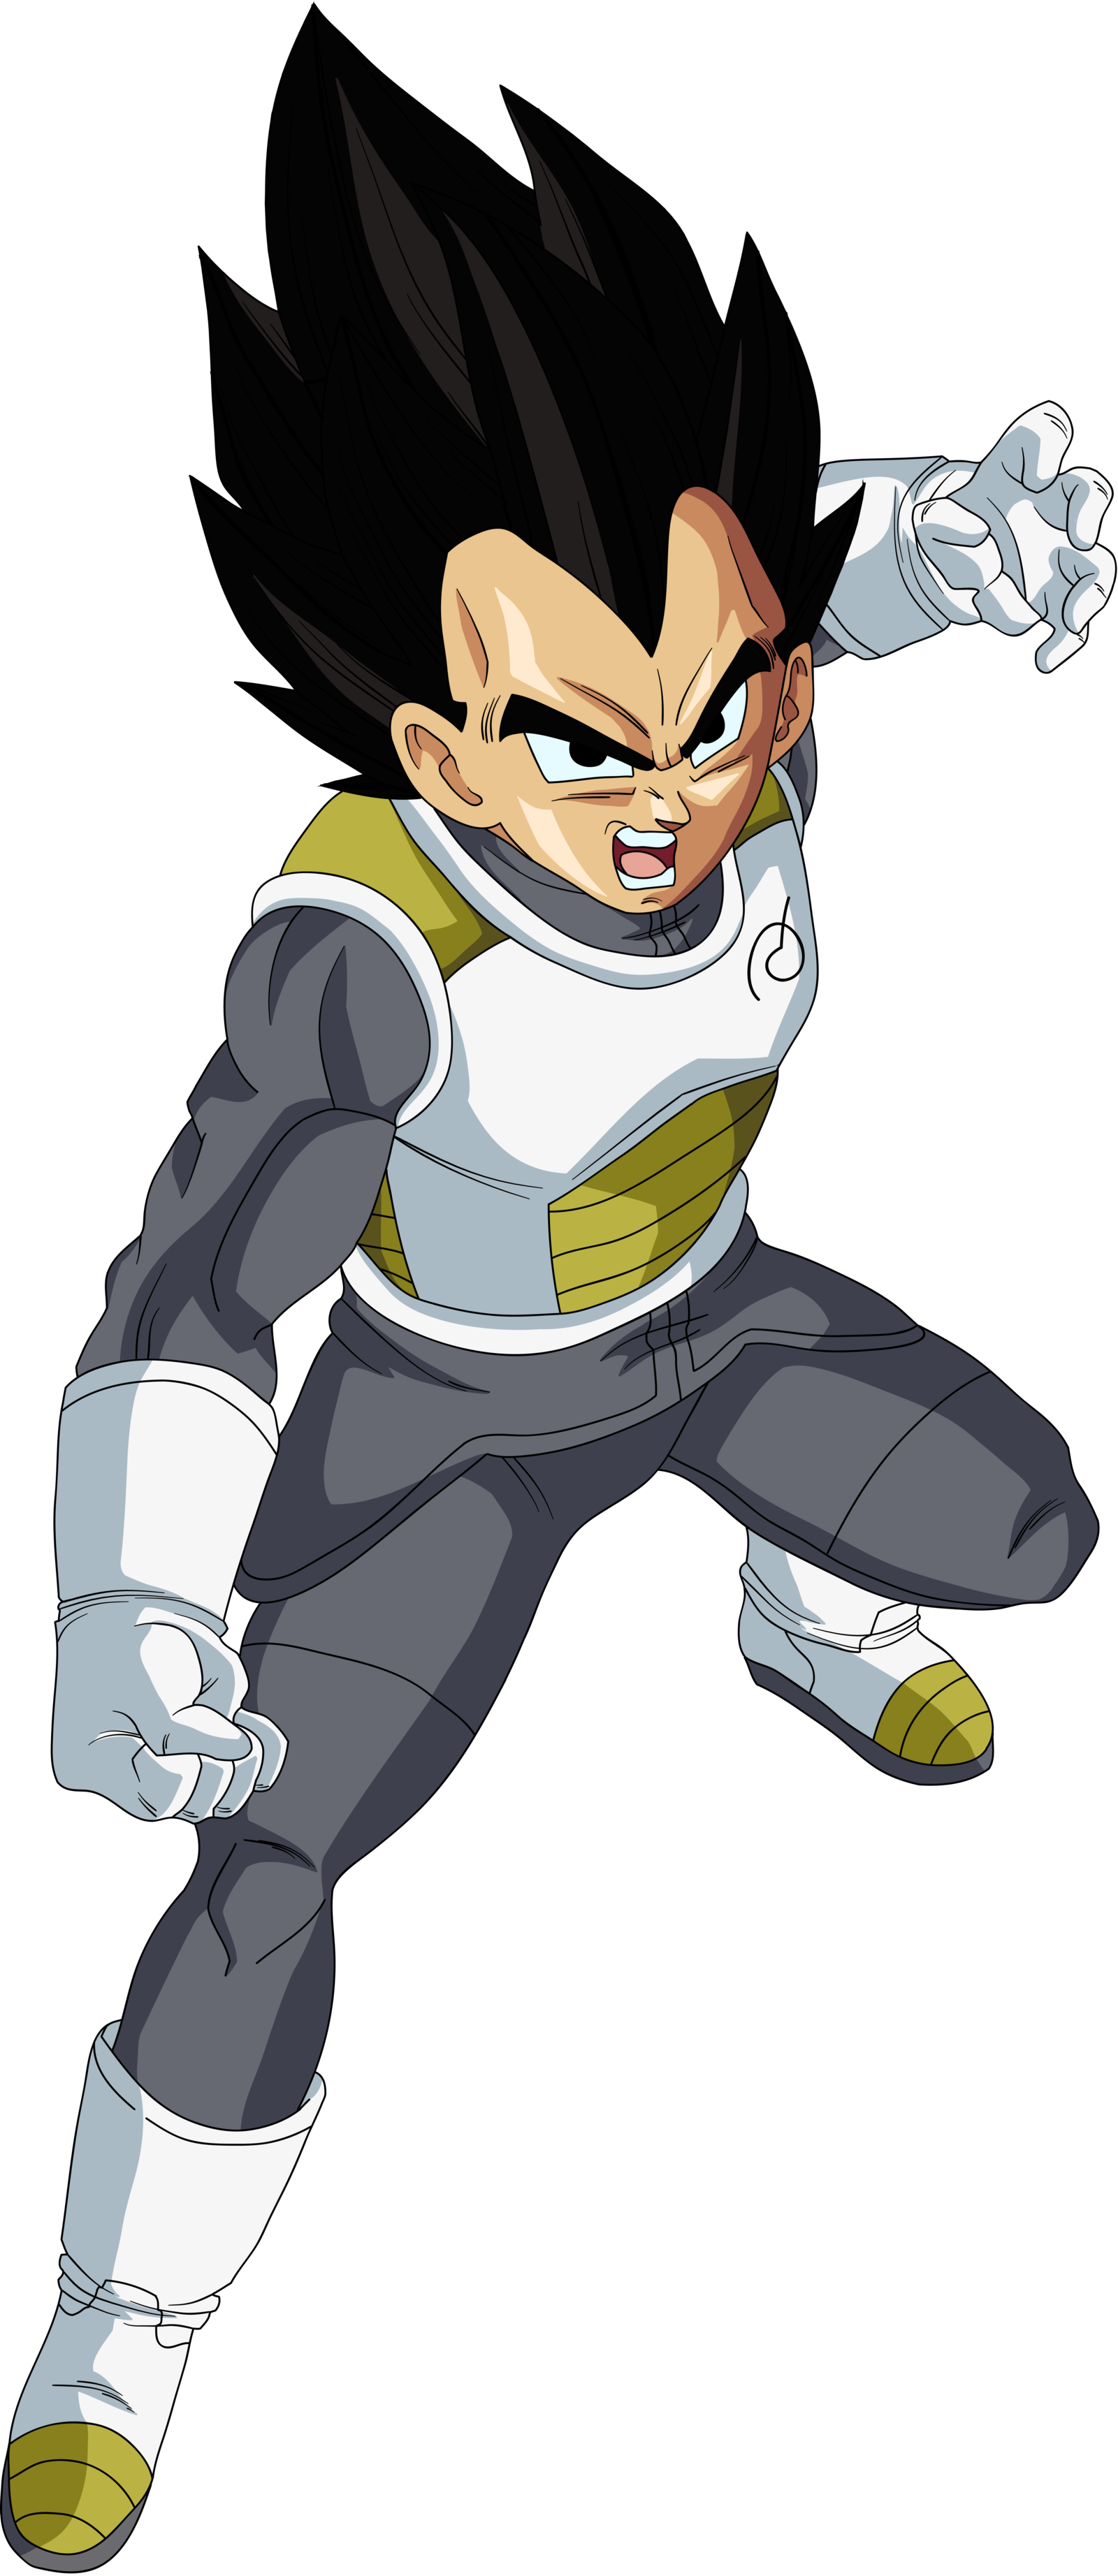 Vegeta dragon ball super png. Fukkatsu no f black